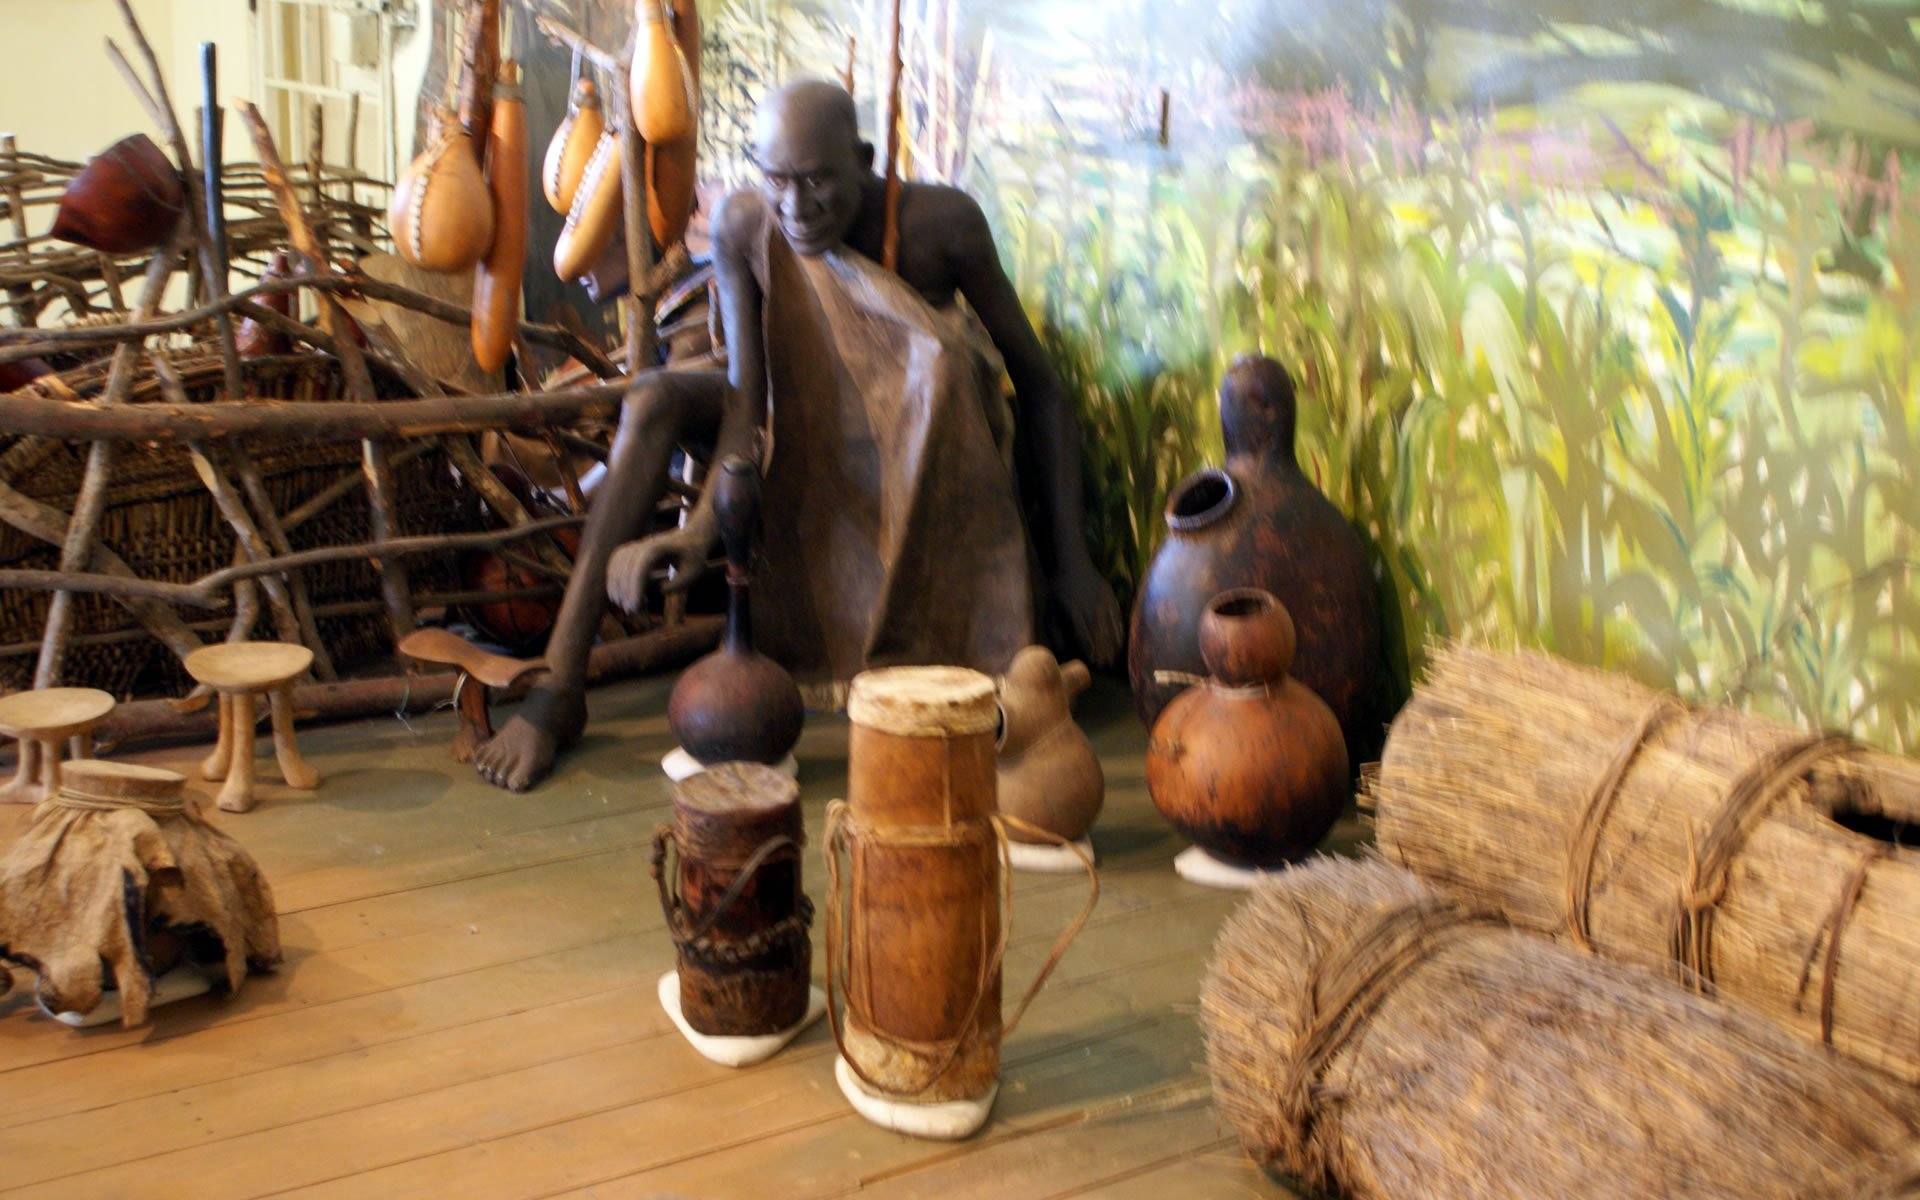 Kapenguria Museum reflects Kenya's political development and the attainment of Kenya's independence in 1963. Here are 3 things you can do.